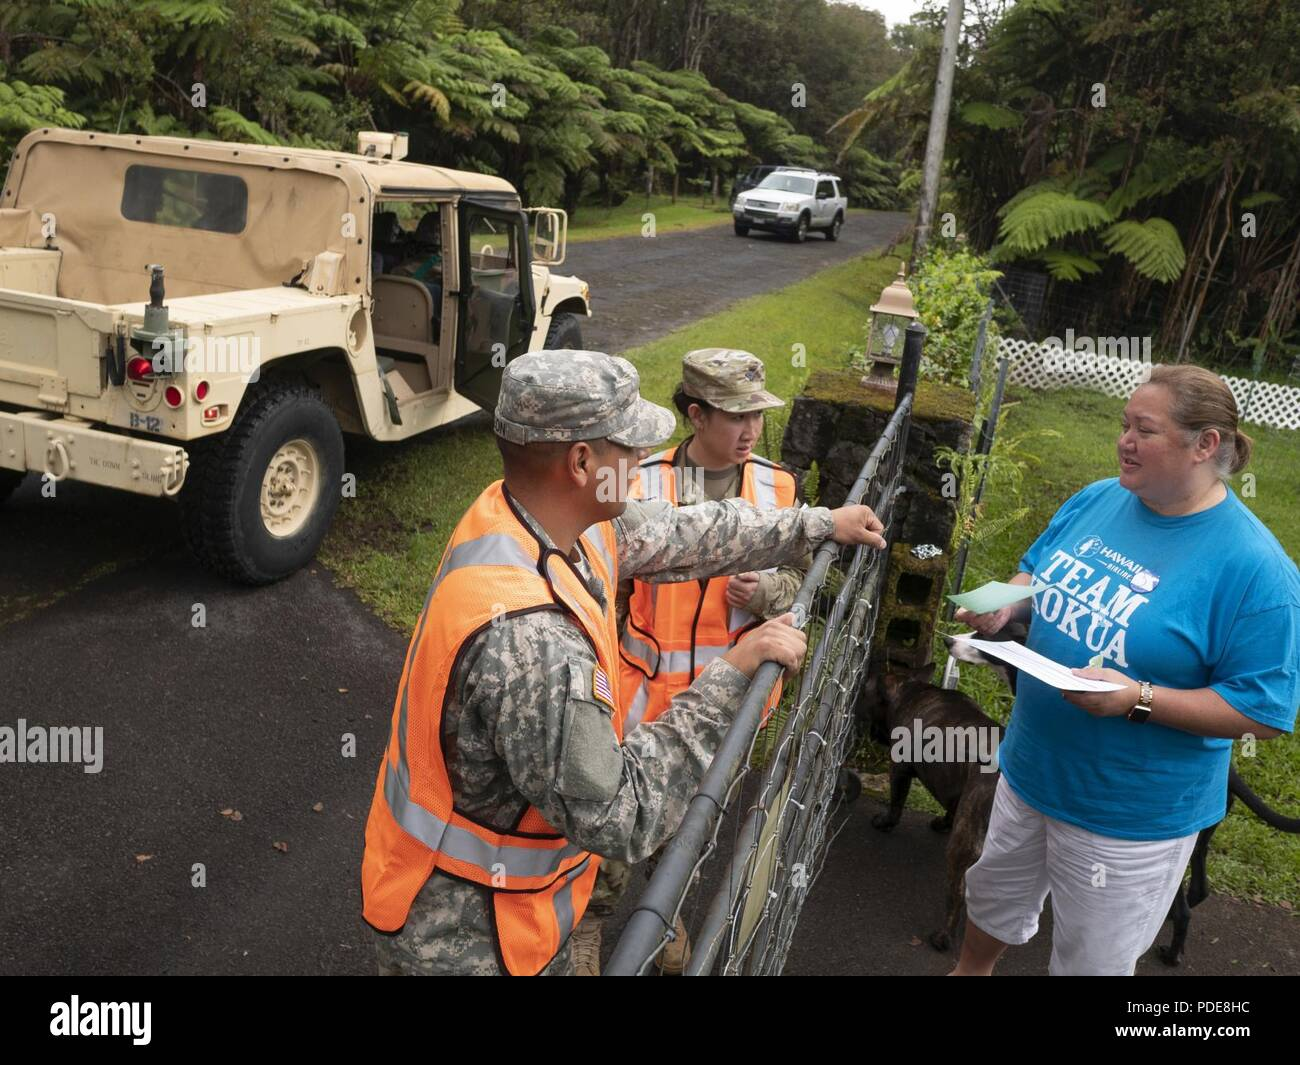 Sgt. Ambrose Leon and Spc. Anyanee Sangchan, representatives of Task Force Hawaii, speak to Kina Sai, a resident of the Volcano community May 17, 2018, at Upper Puna District, Hawaii. Residents have been visited by guardsmen and members of County of Hawaii Civil Defense as a measure to ensure the community is informed about the adverse conditions which may occur, due to the ongoing volcanic activity. - Stock Image